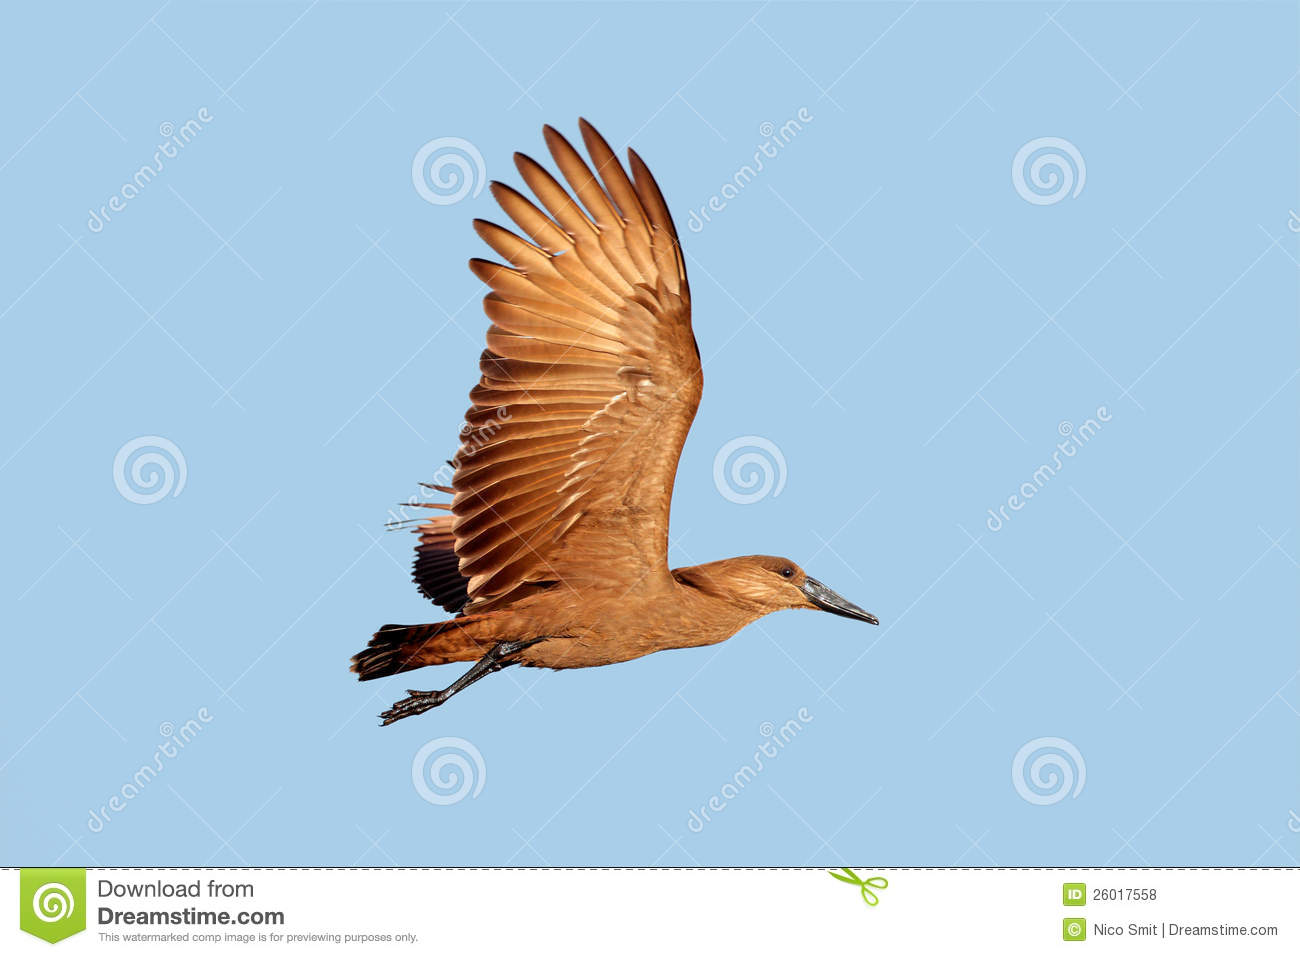 Flying Birds Free Stock Photos Download 3 416 Free Stock: Hamerkop Bird In Flight Stock Photo. Image Of Southern